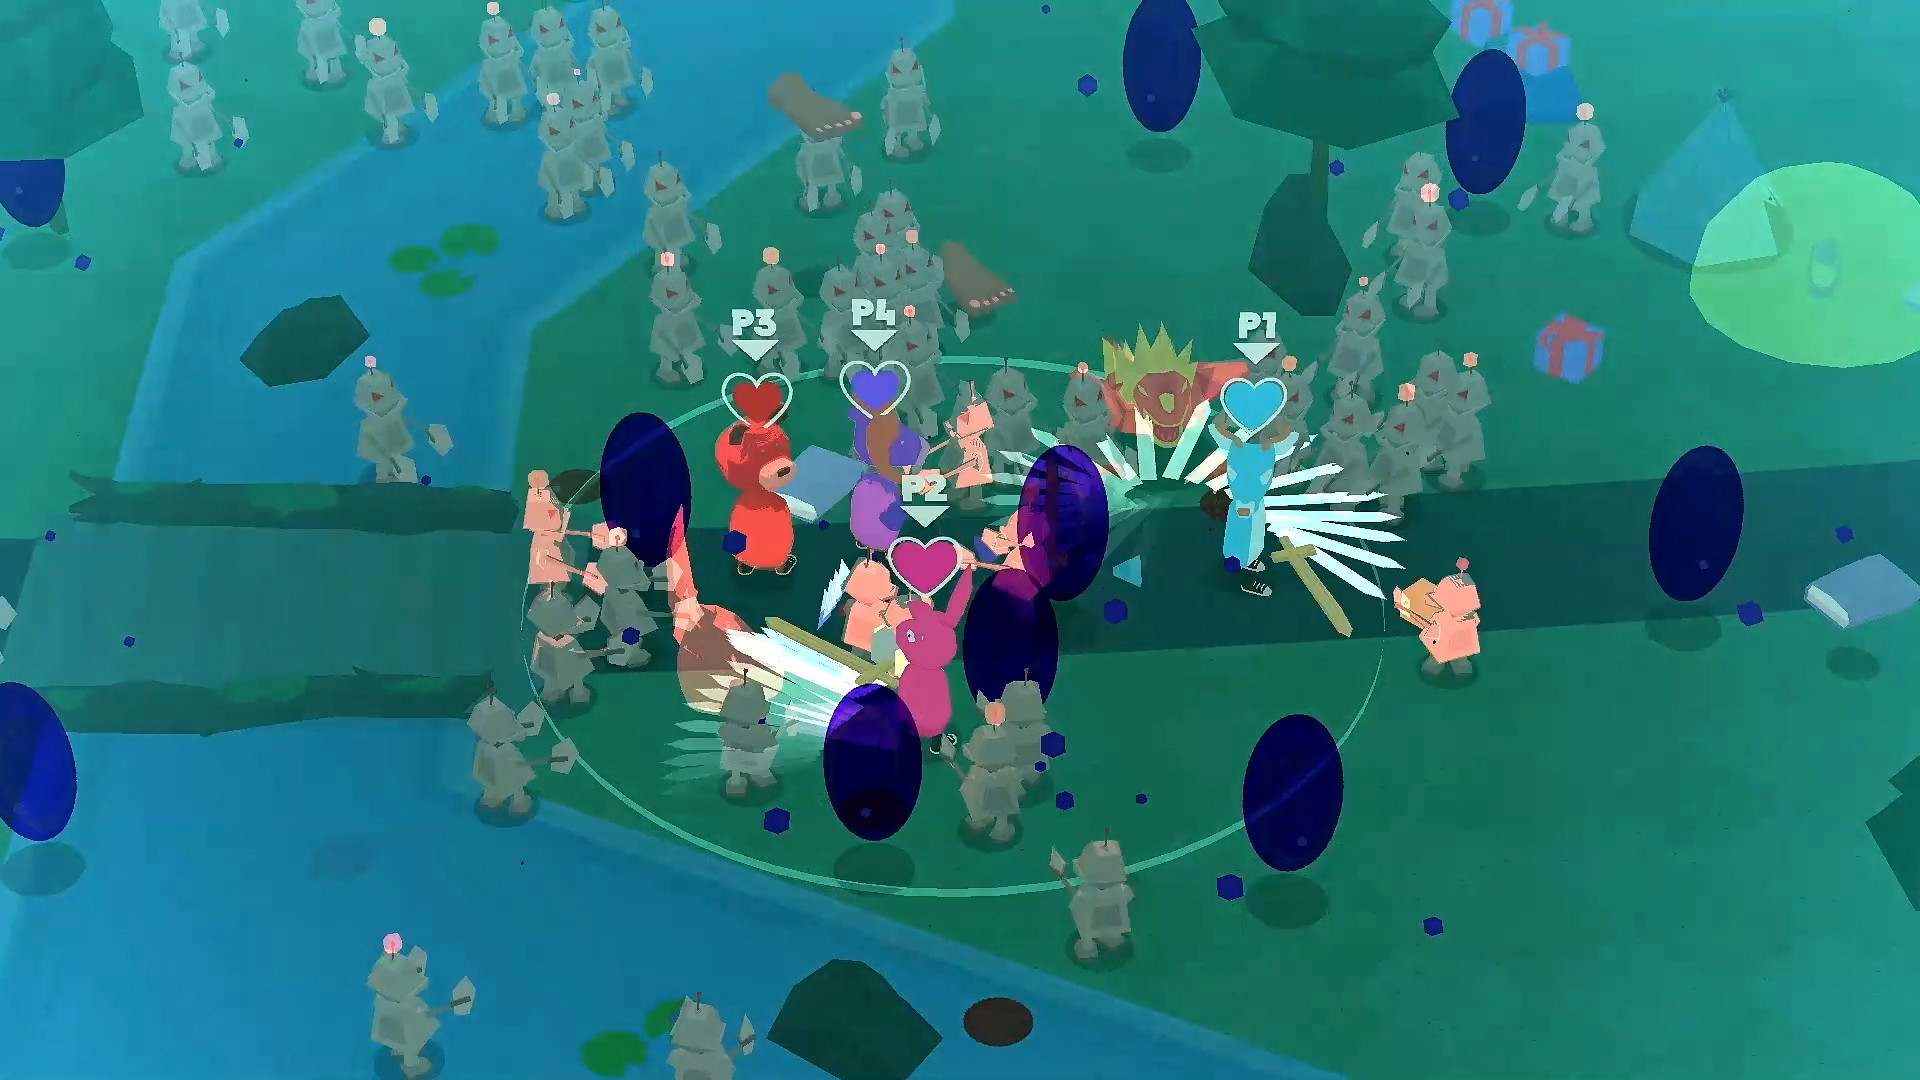 LazyGuysBundle –Steam game Neighborhorde by Fermenter Games for Windows available in the Bundle 25: Feels Like Home deal for a cheap price.